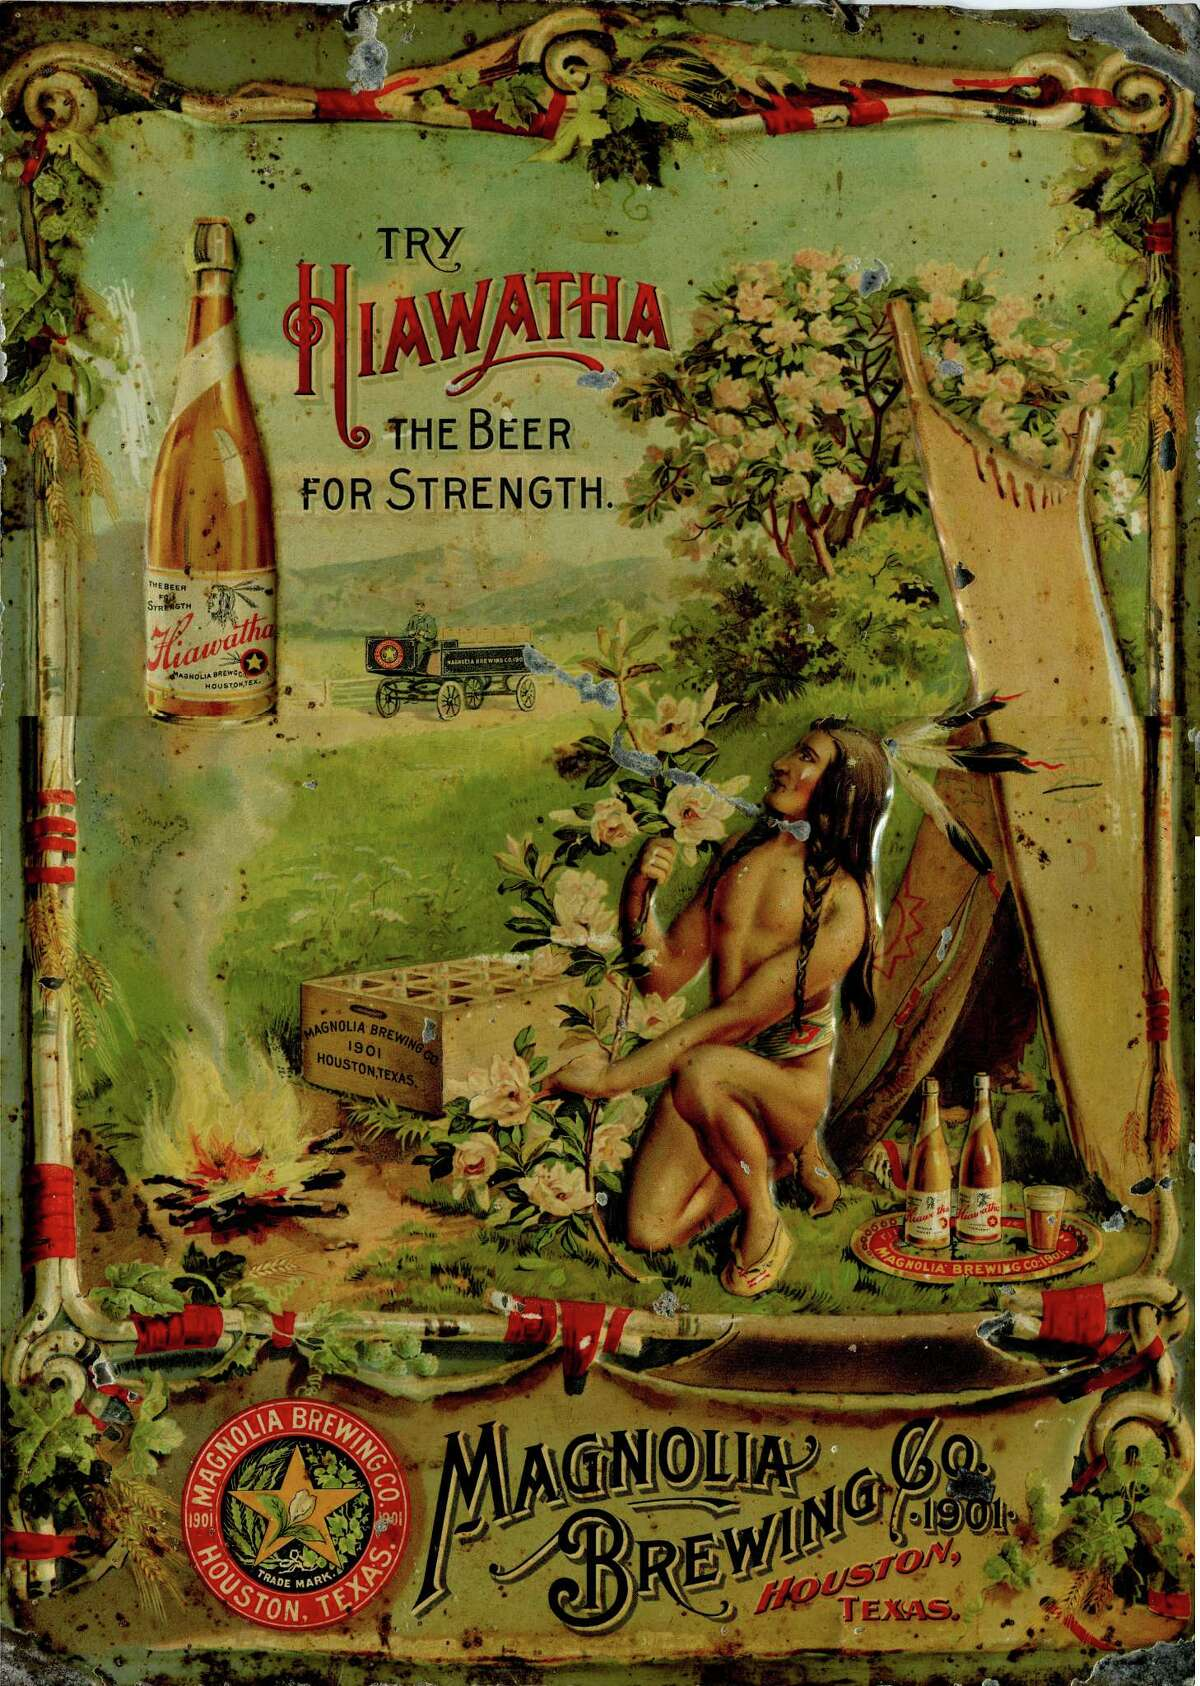 Commemorative tin for Hiawatha, an early Houston beer. Collection of Philip Brogniez. From